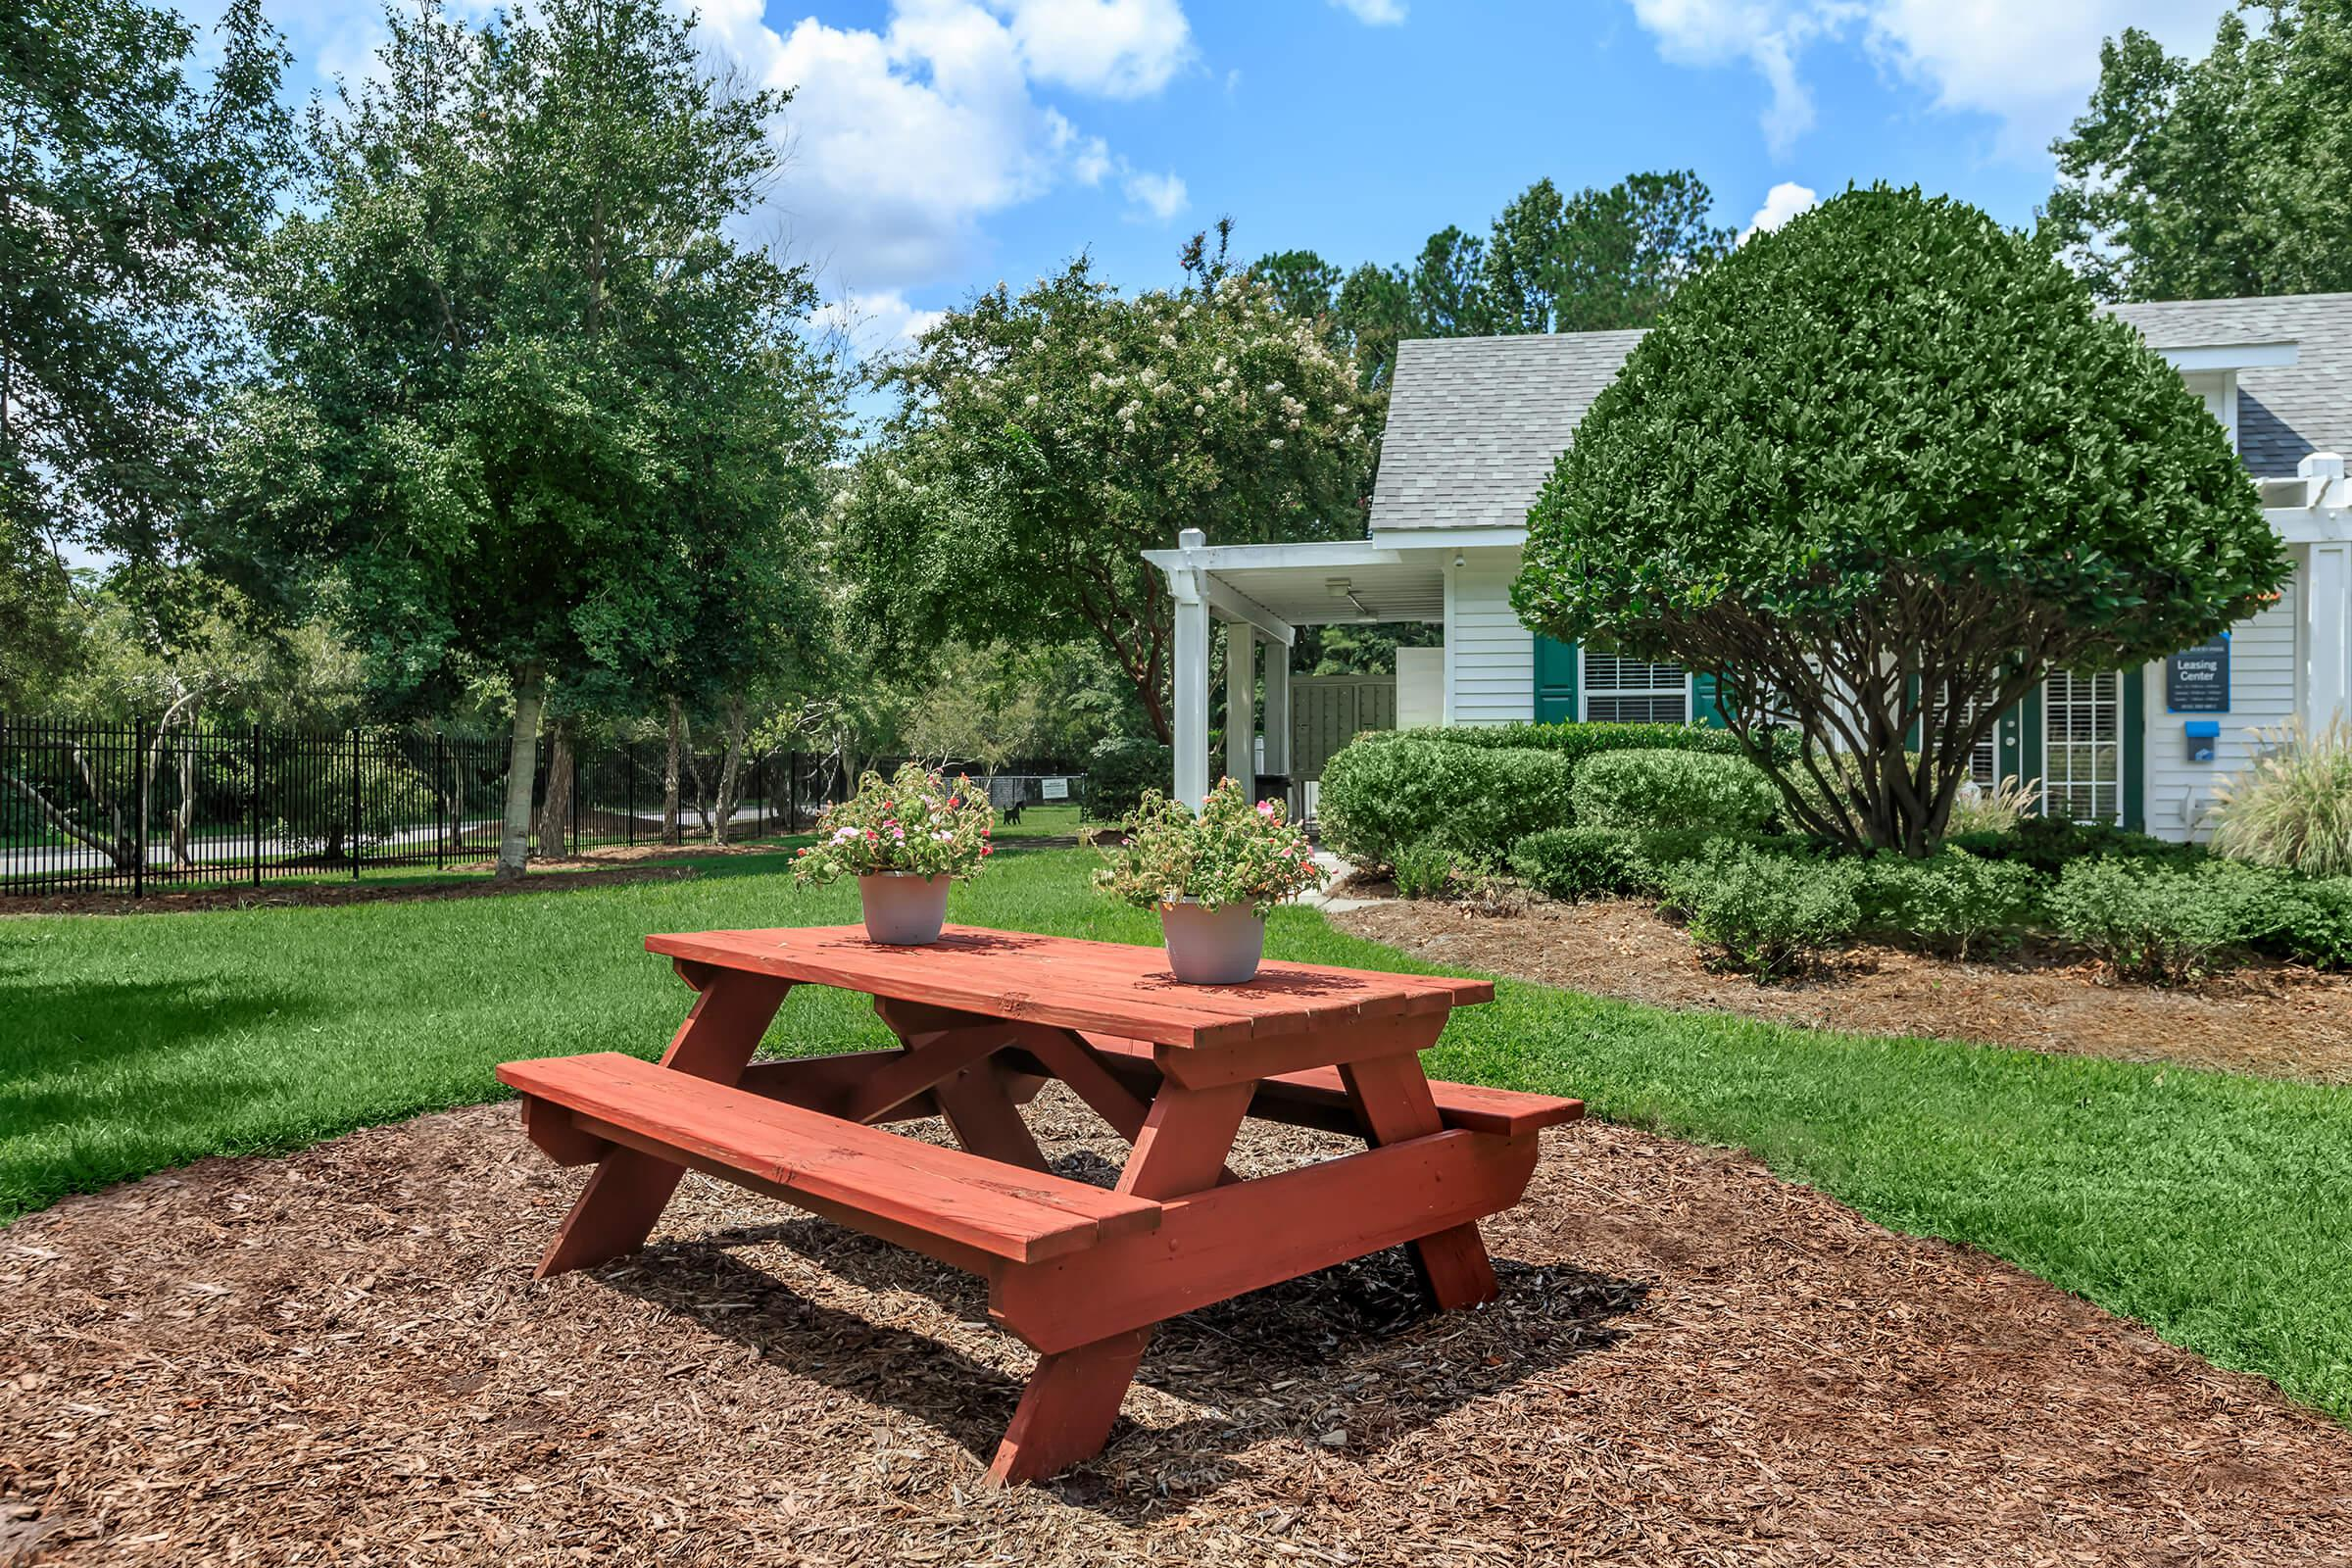 an empty park bench next to a picnic table